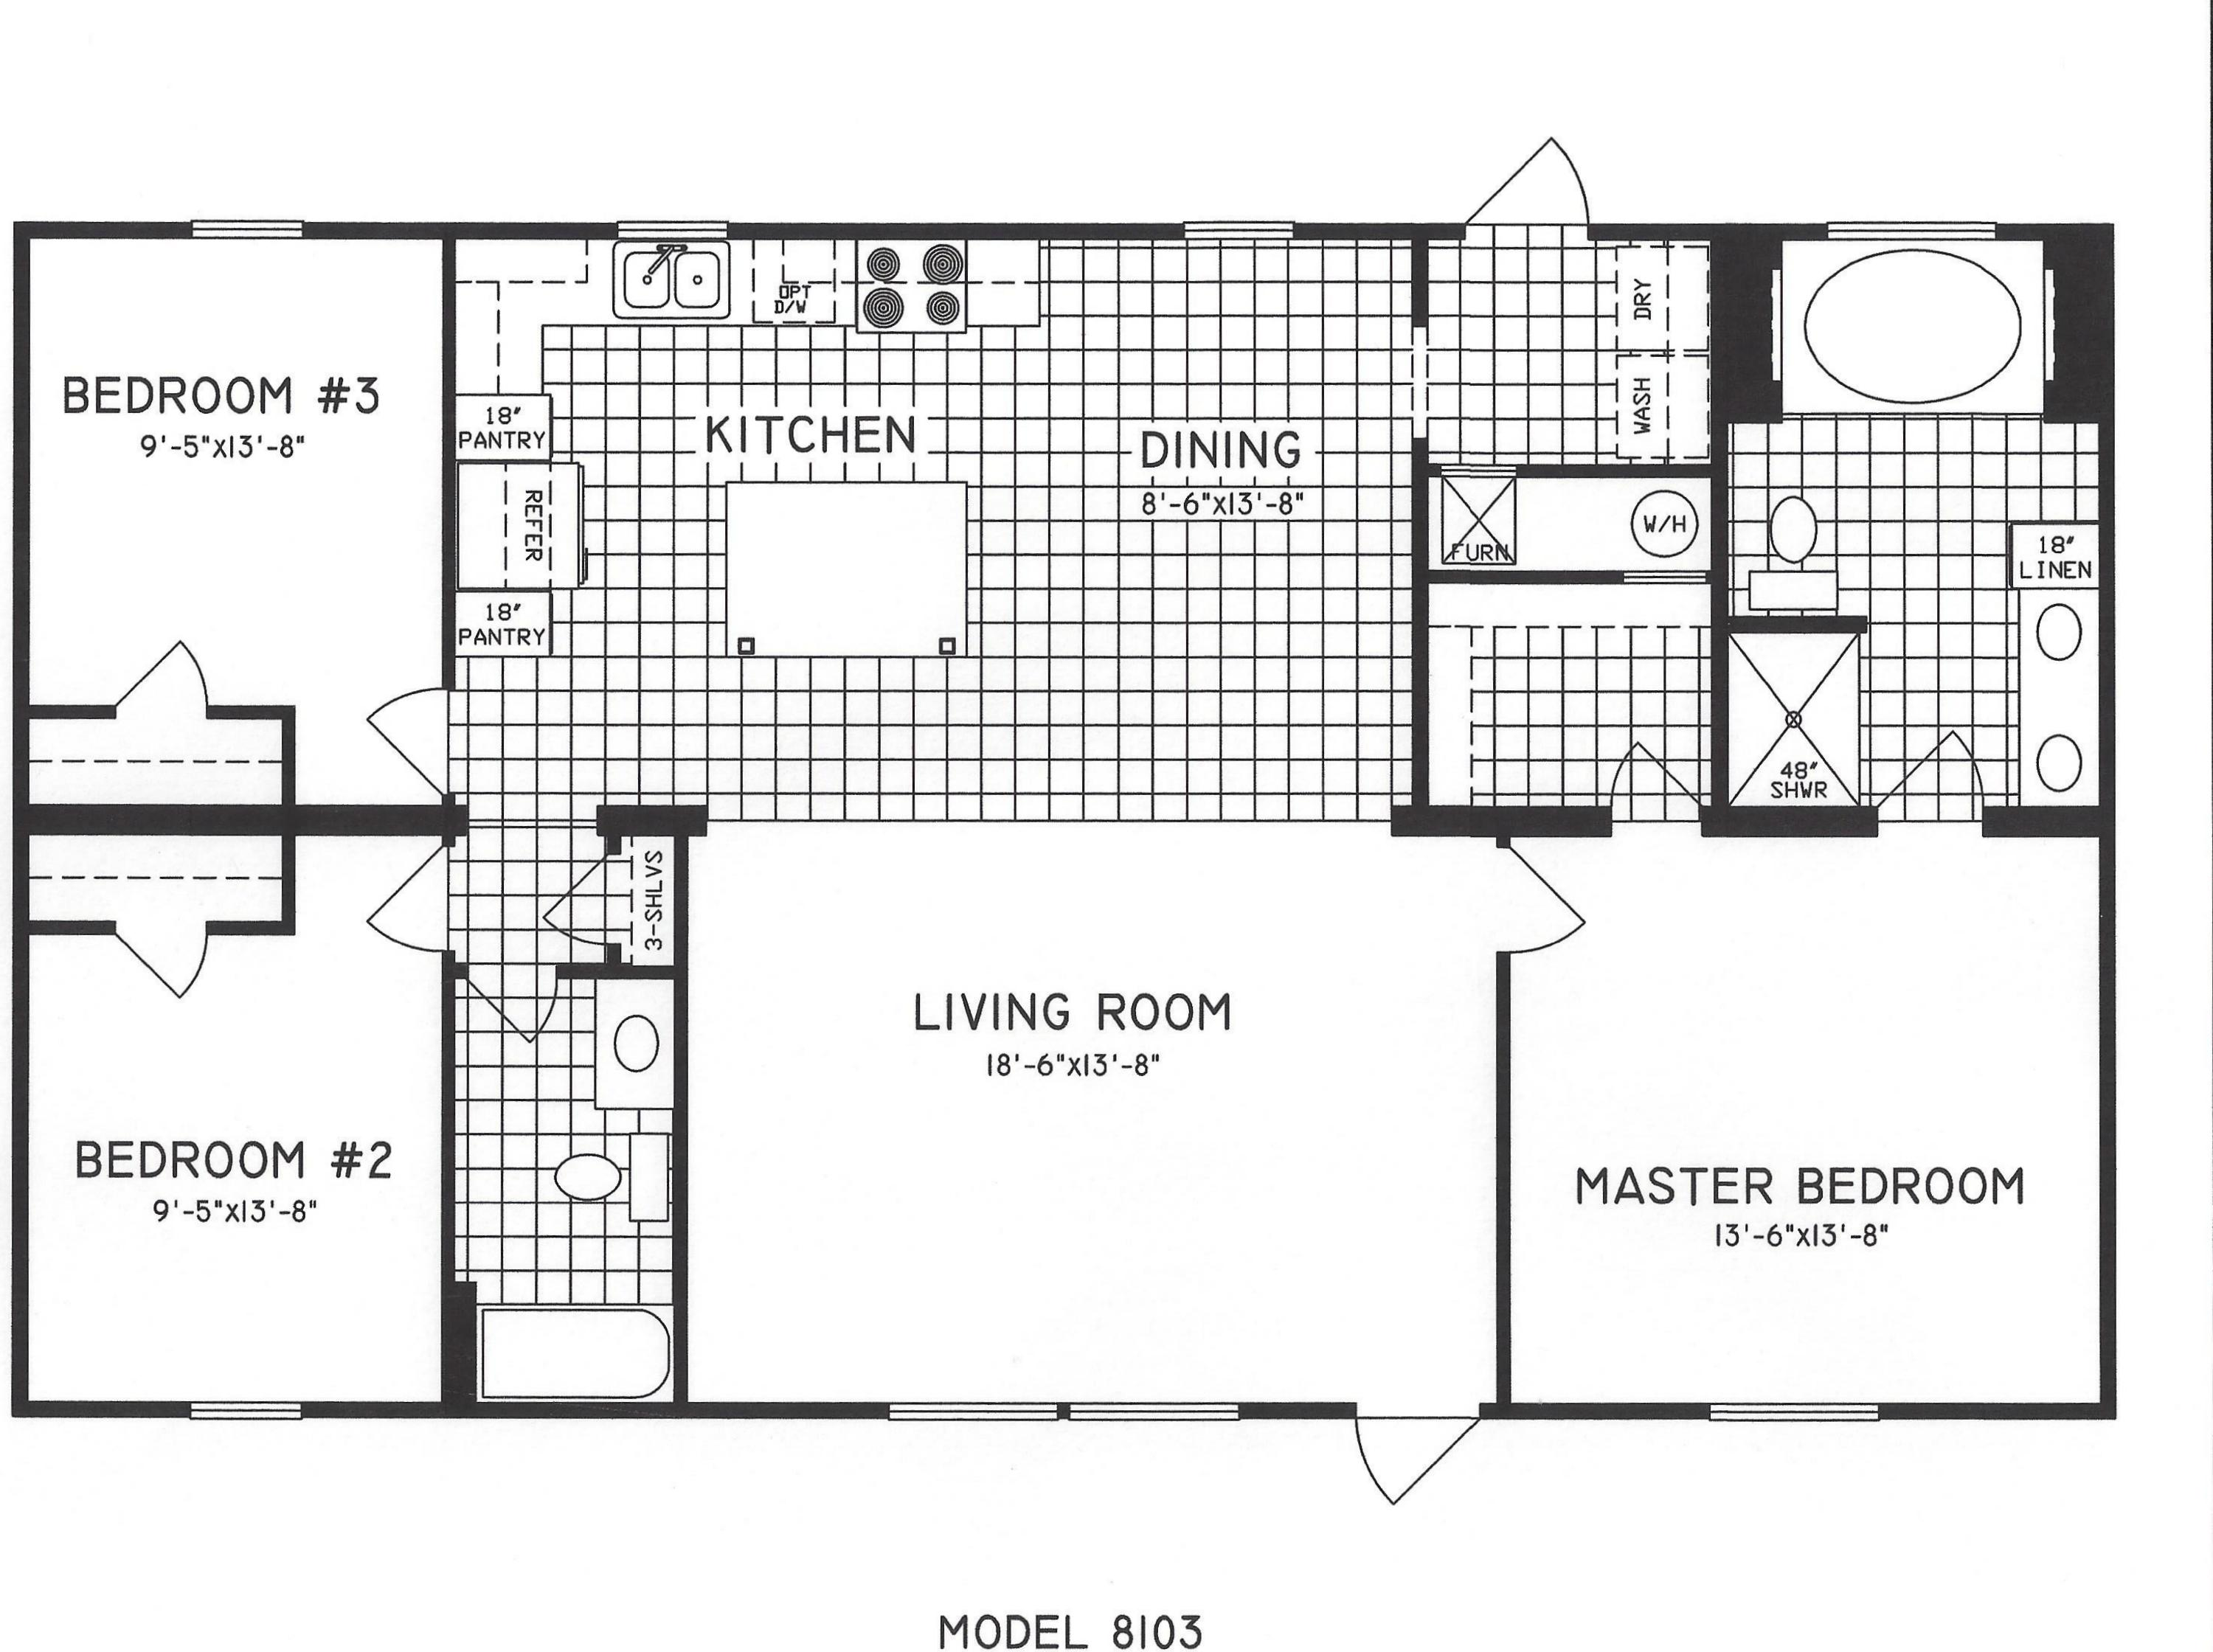 3 bedroom floor plan c 8103 hawks homes manufactured for 3 bedroom modular home floor plans